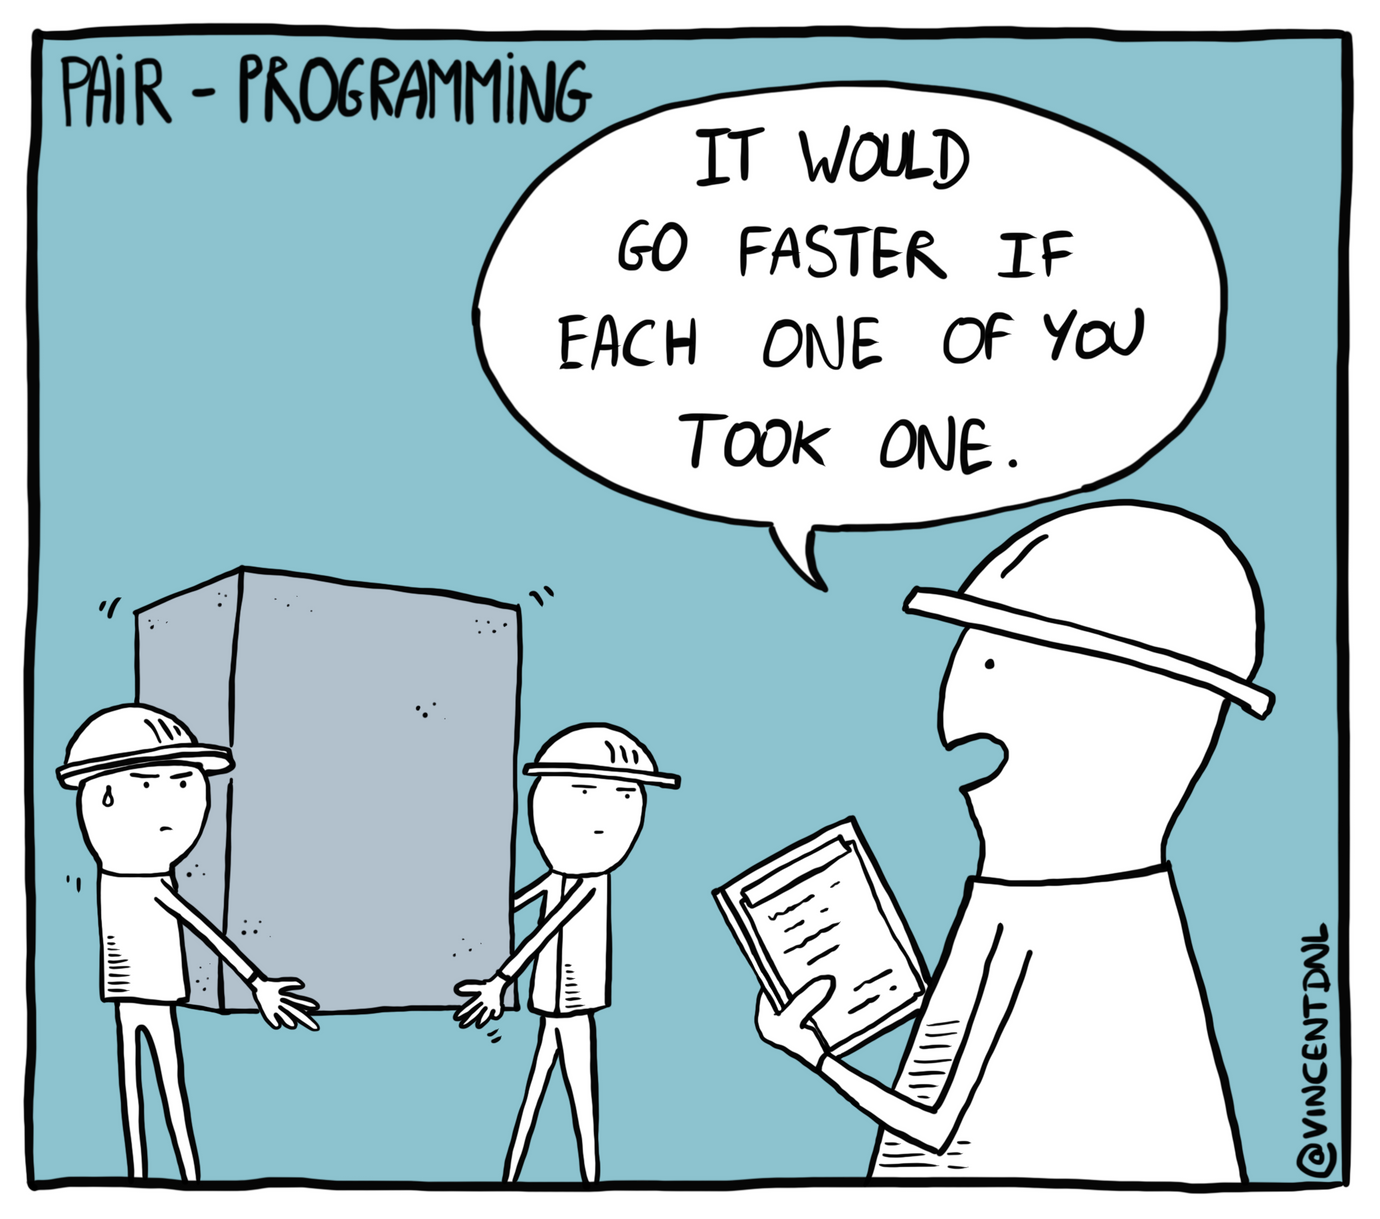 drawing - text: Pair Programming - It would go faster if each one of you took one.